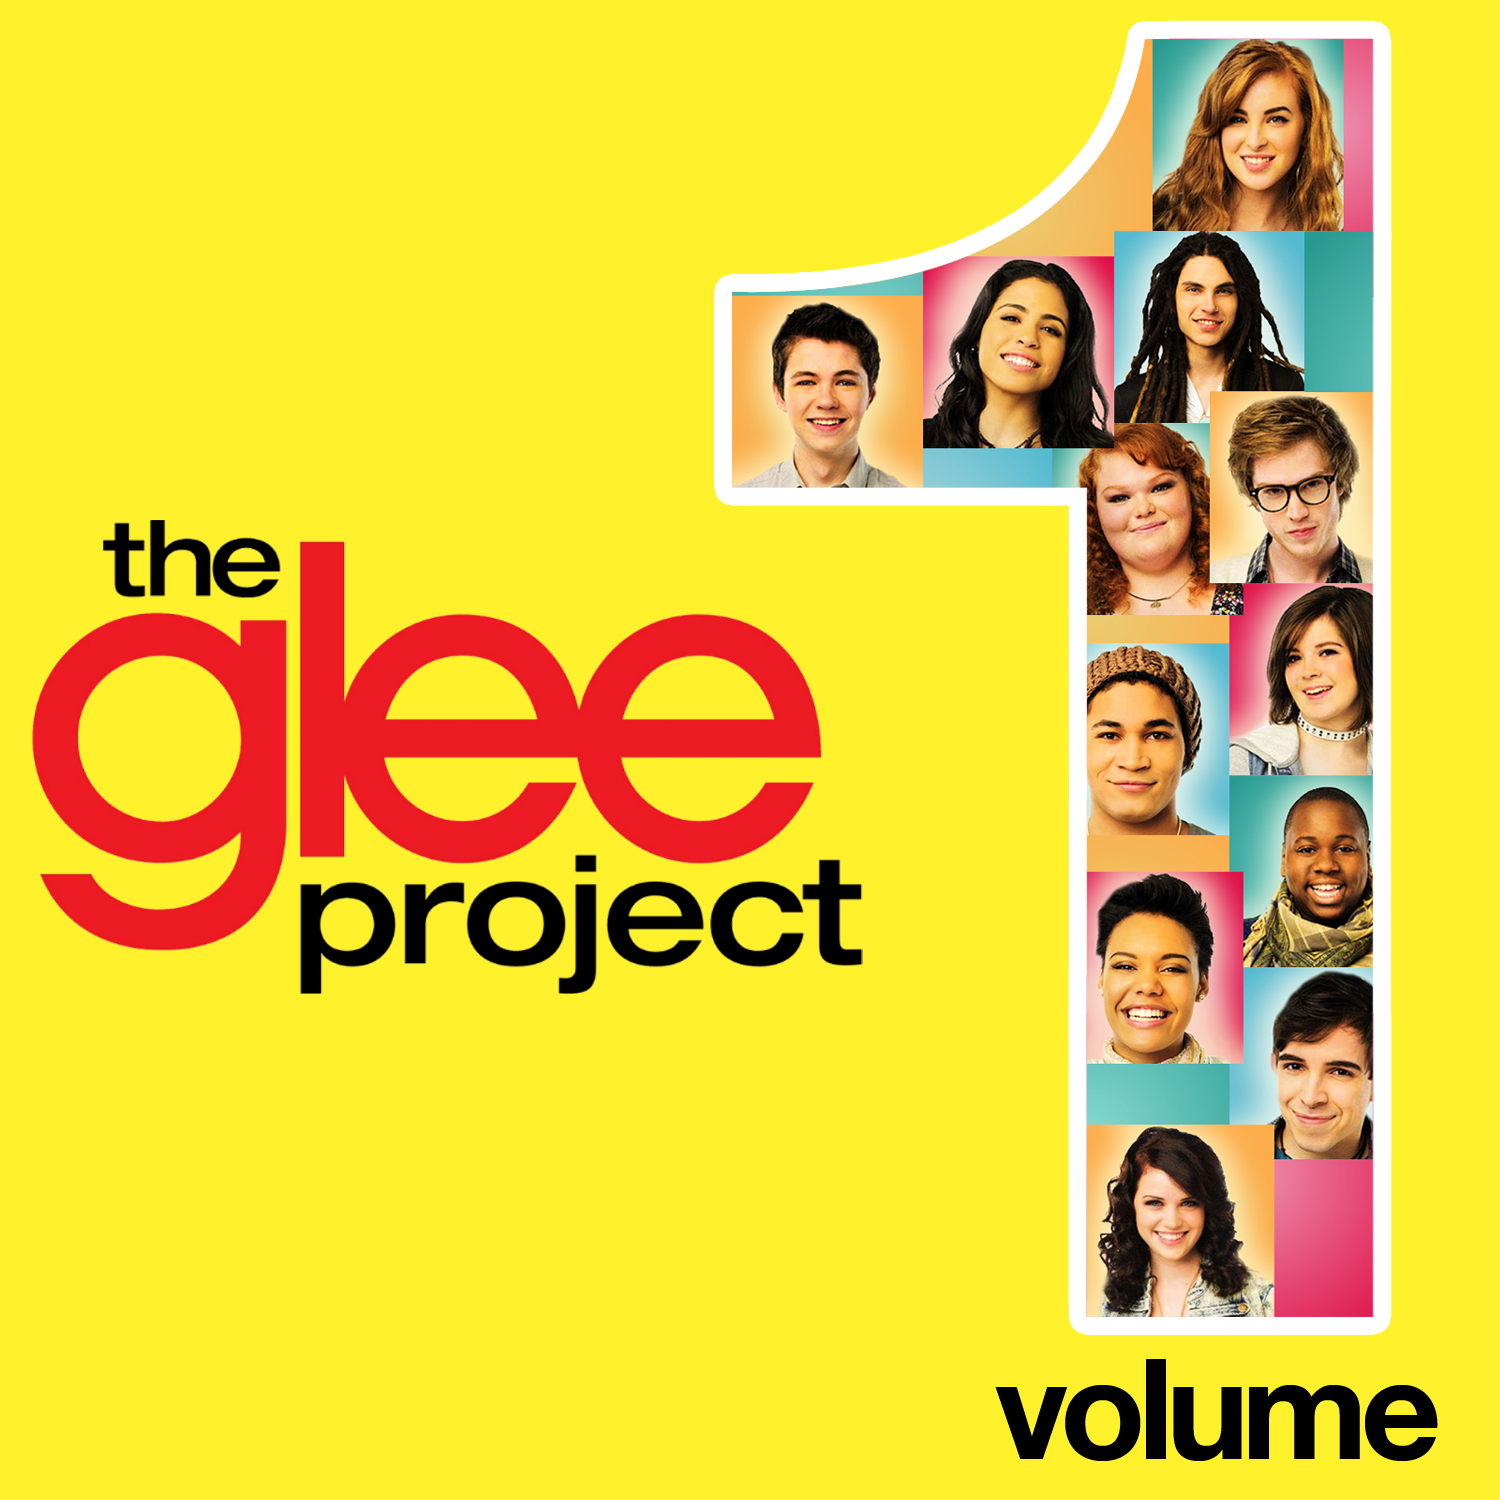 Merycoversglee The Glee Project Volume 1